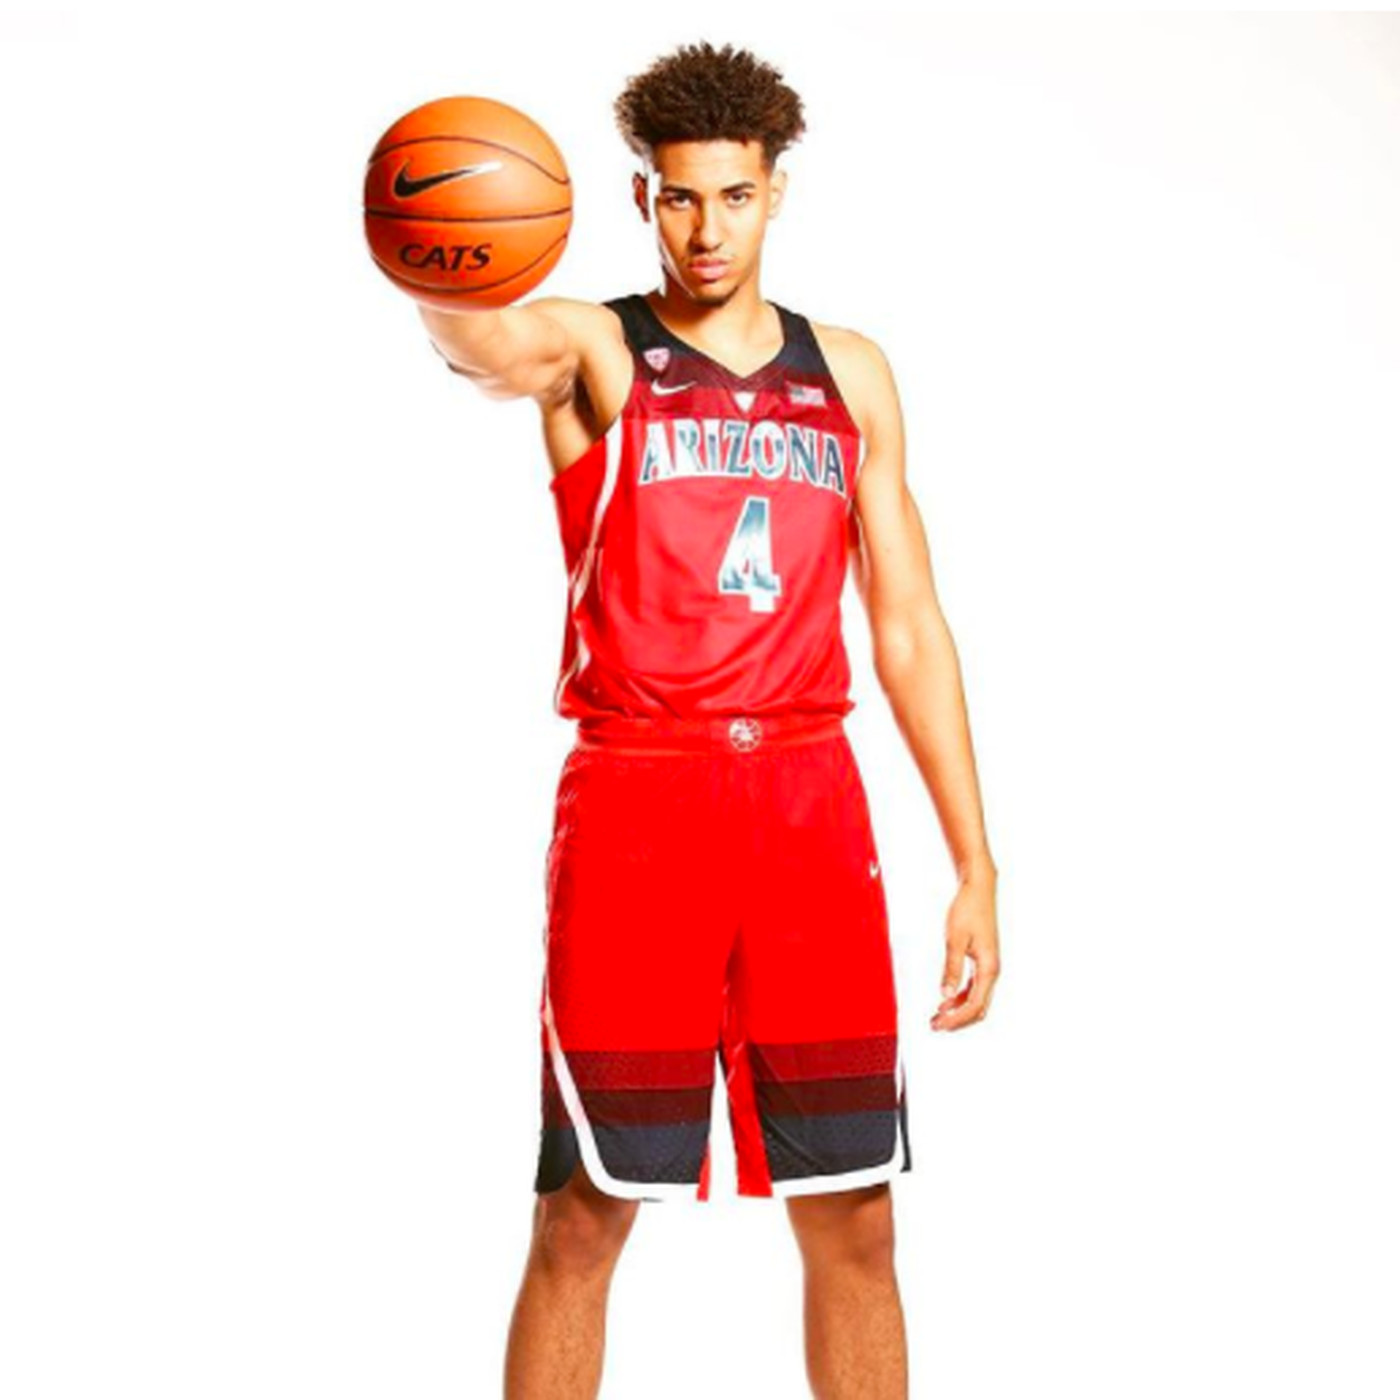 Arizona basketball: Chase Jeter will play in Wildcats' Spain ...